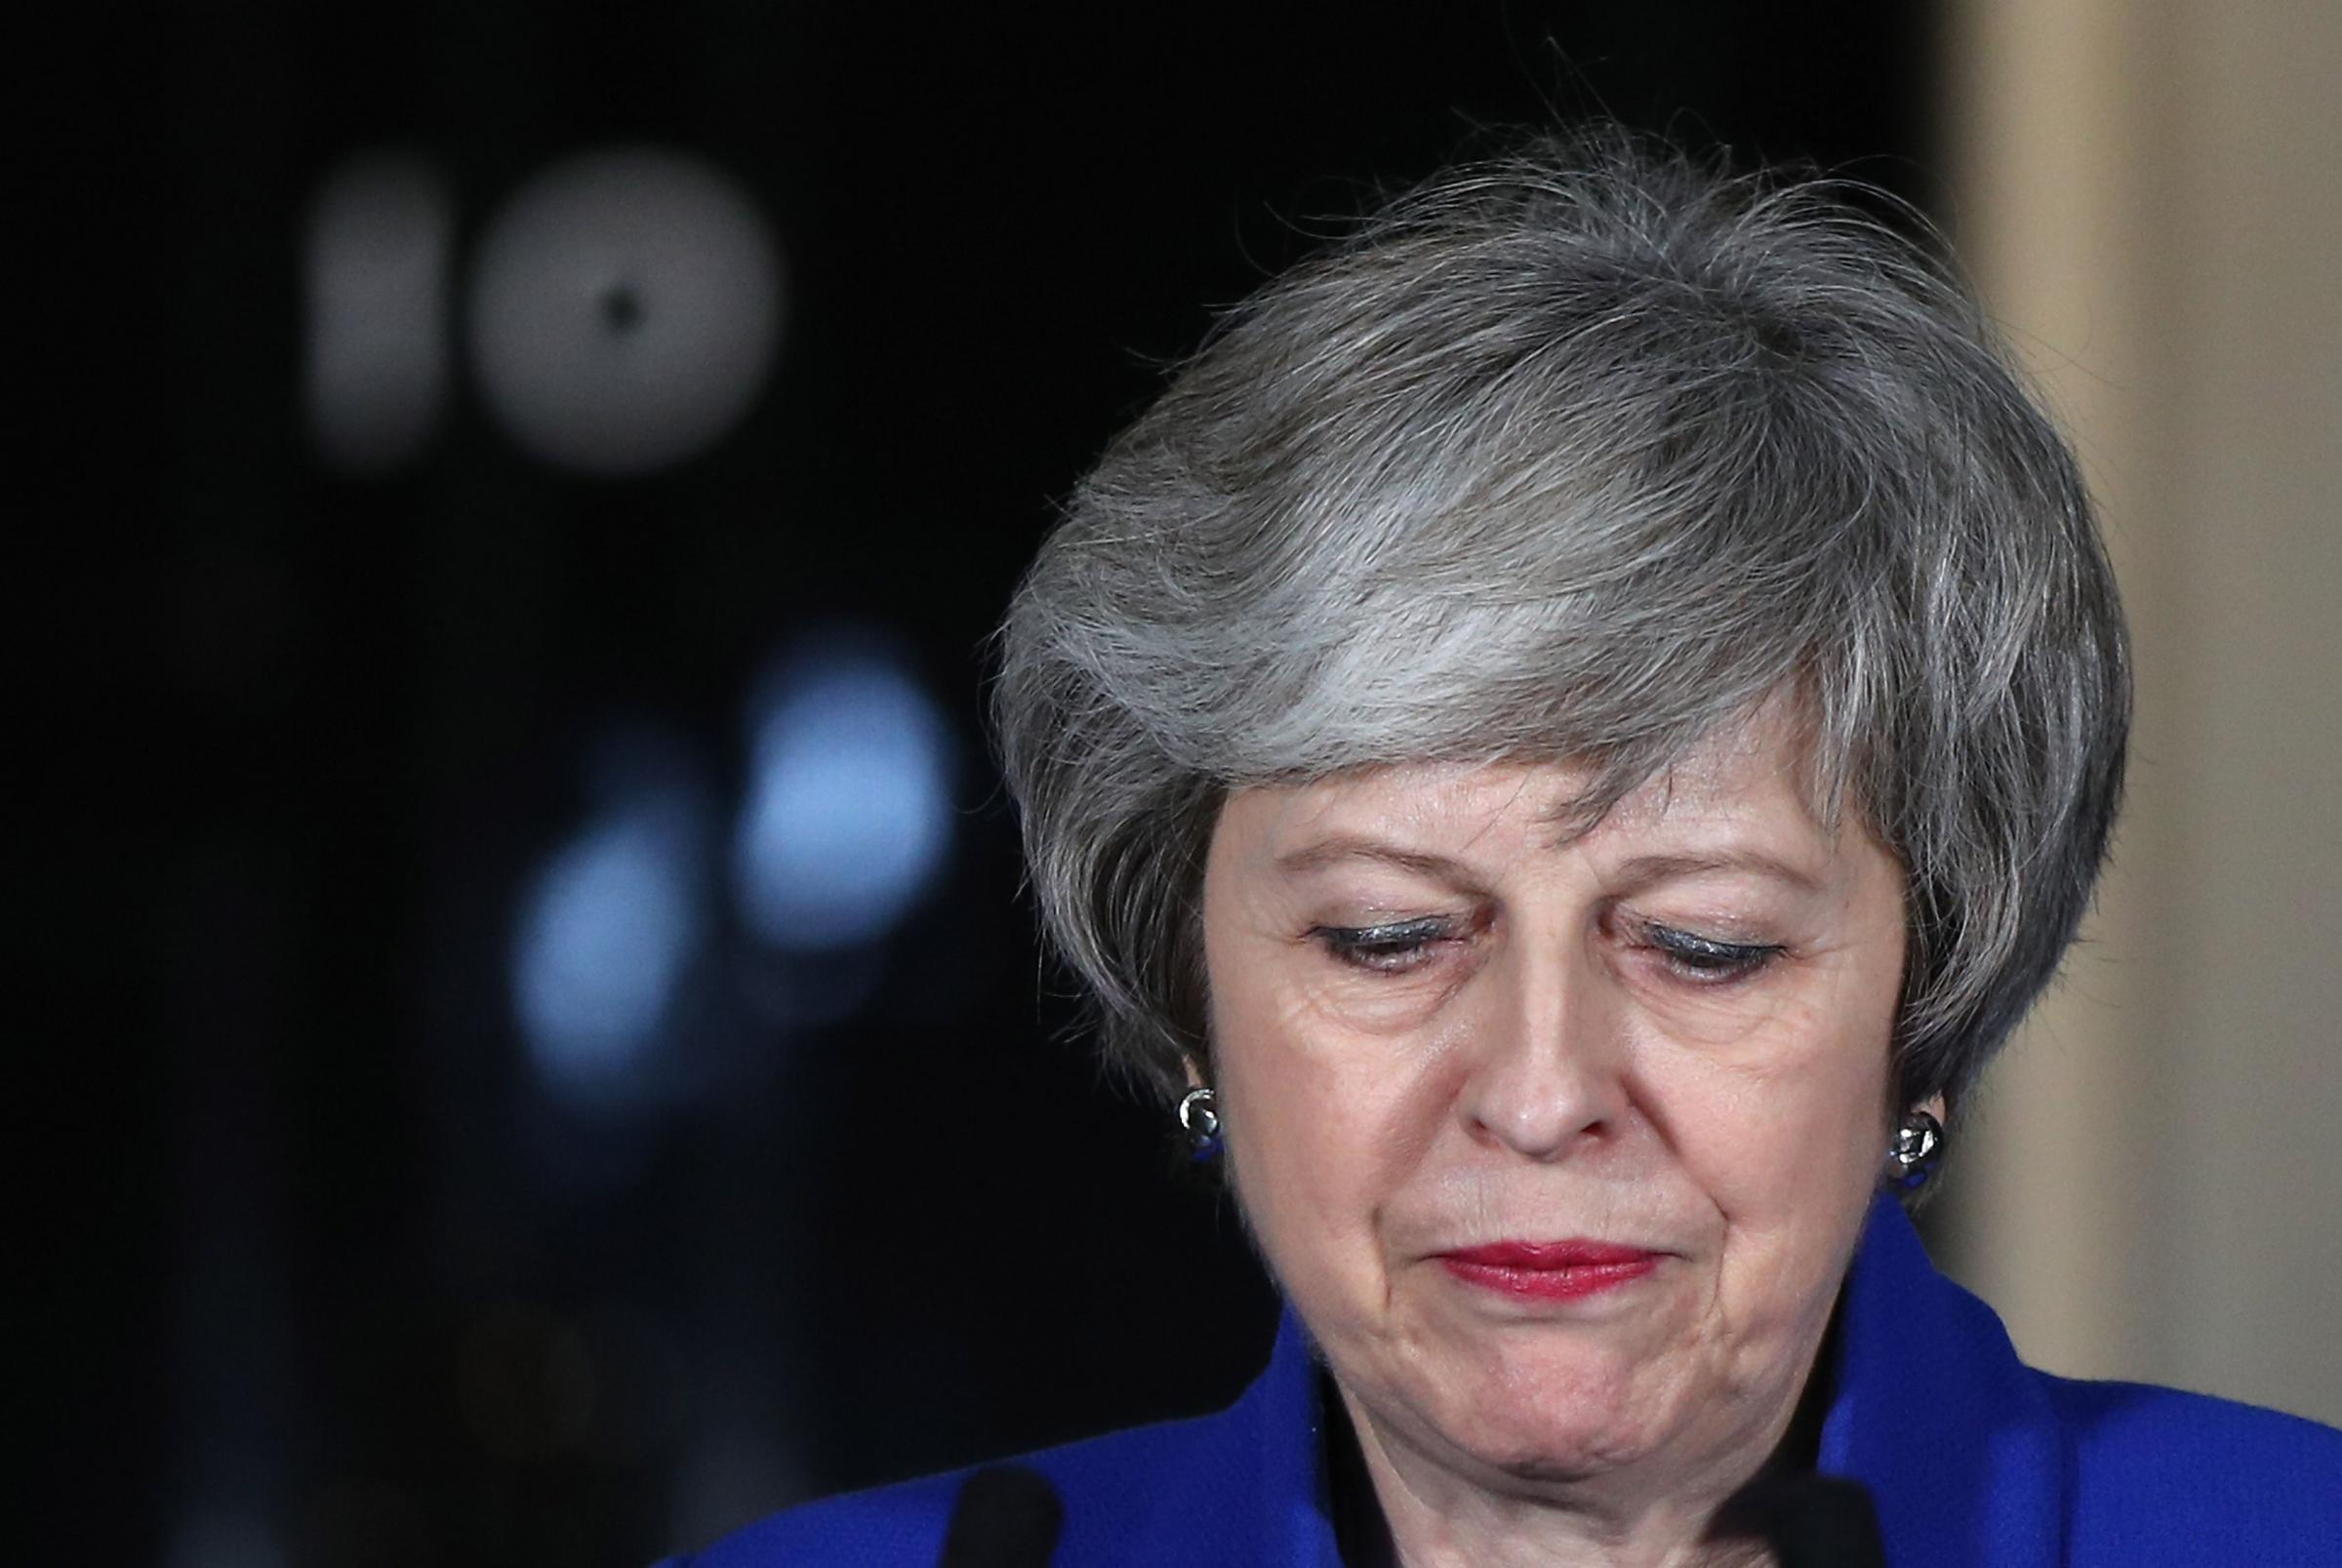 SPLIT PARTY?: Prime Minister Theresa May. PICTURE: Yui Mok/PA Wire